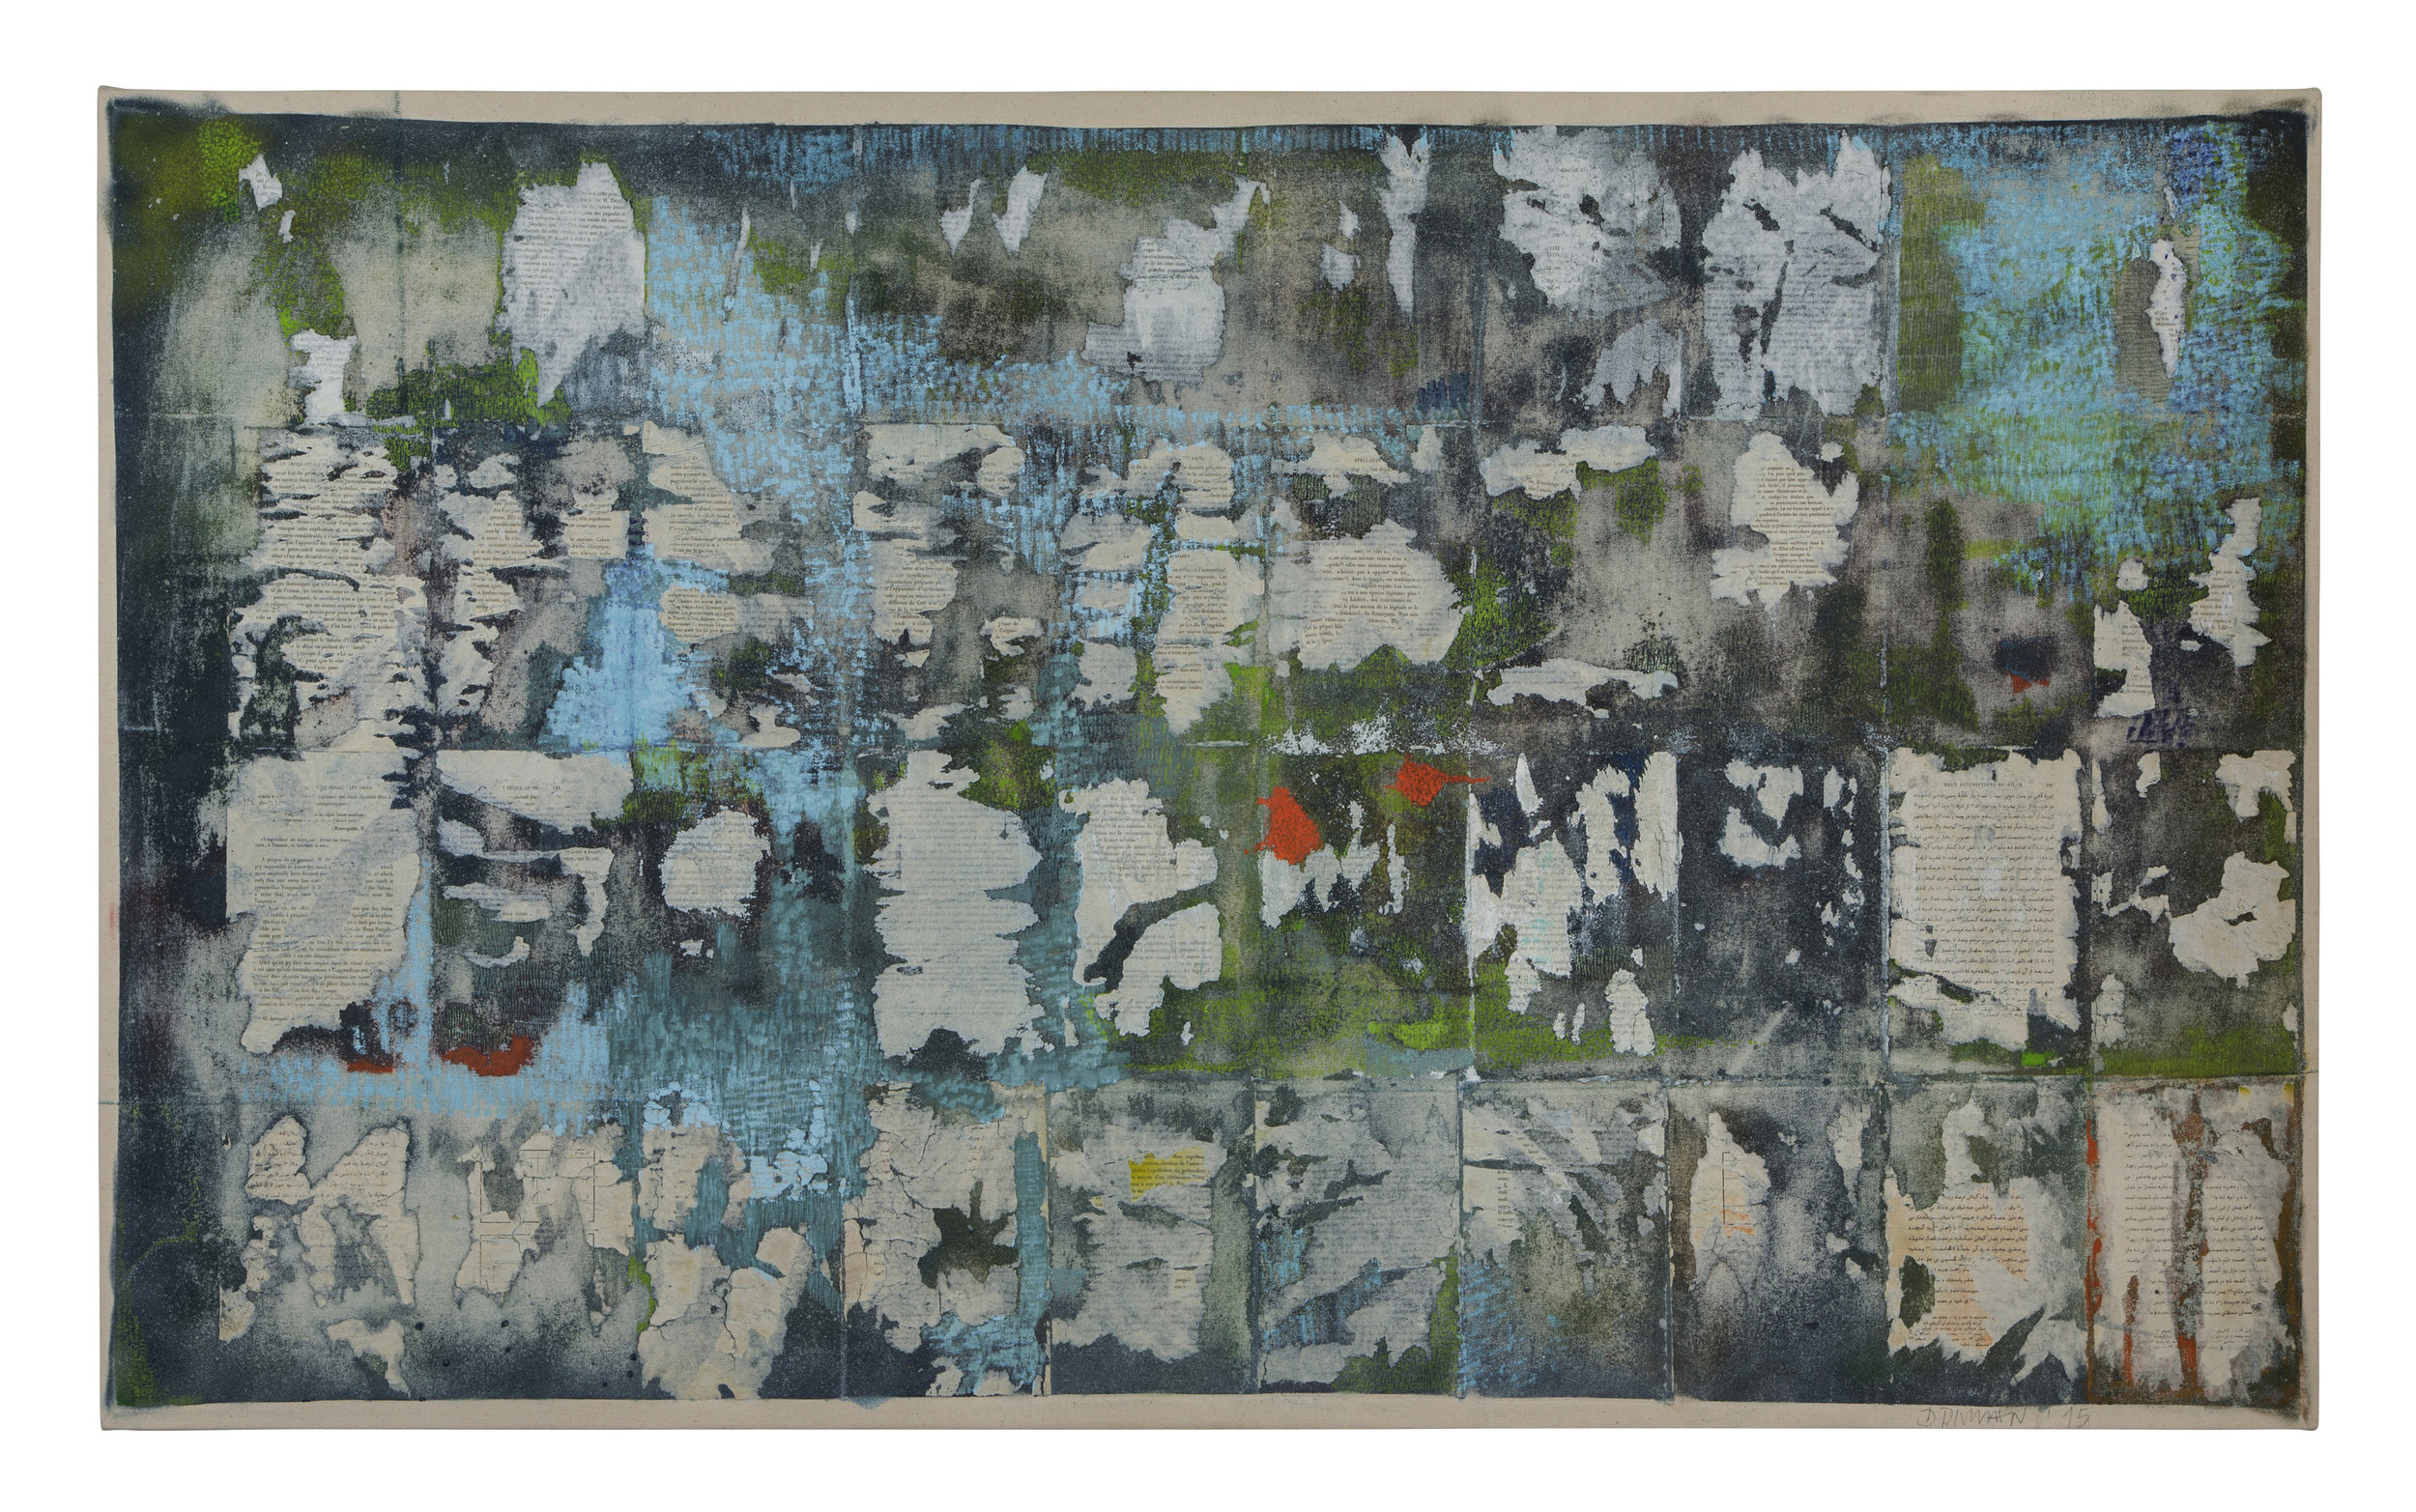 uncharted territory 6, 2015. Printed papers on canvas with acrylic and spray paint, 40.5 x 64.5in (103 x 165cm)